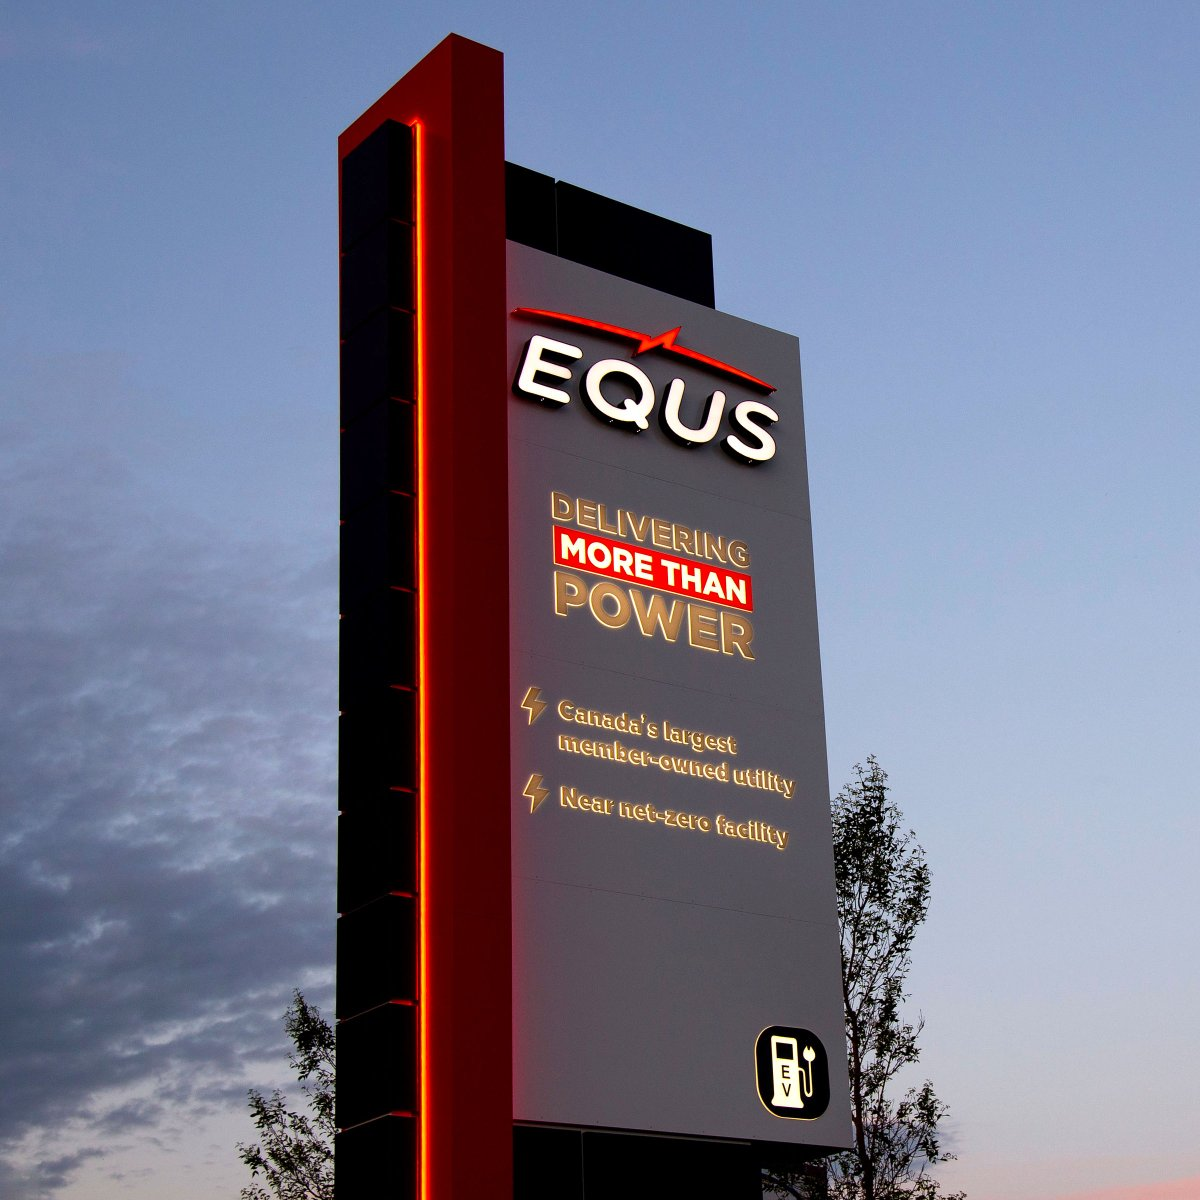 Our latest freestanding sign for Equs was designed to mimic the look of the building. The core of the sign is fabricated with intentional reveals, a cabinet sign with channel letters and push-throughs, and an LED rope lighting detail.  #FreestandingSign #PylonSign #Innisfailpic.twitter.com/m2CGkOgi7k